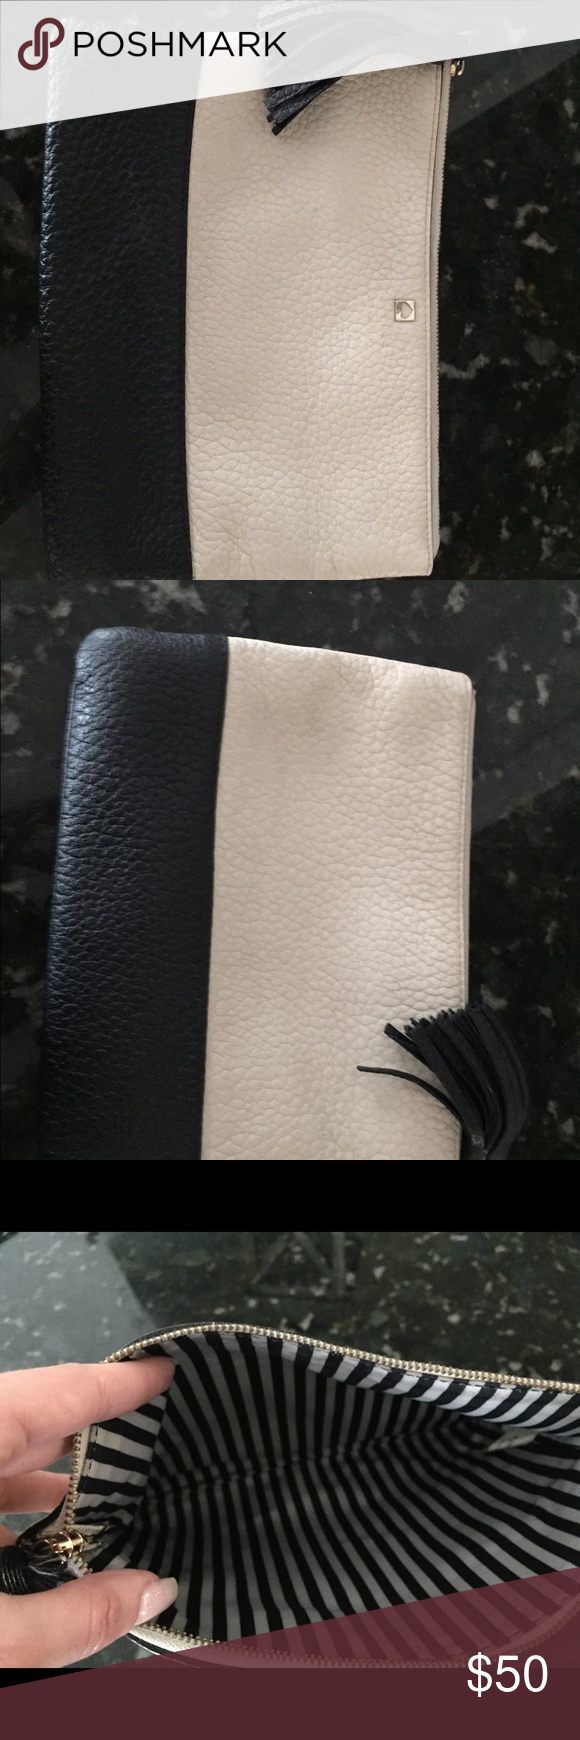 Kate spade clutch Black and cream Kate shade clutch. Used and light markings of use on the cream portion but can be easily removed with a leather wipe. Still in very good condition. Larger size clutch with black fringe tassel. kate spade Bags Clutches & Wristlets